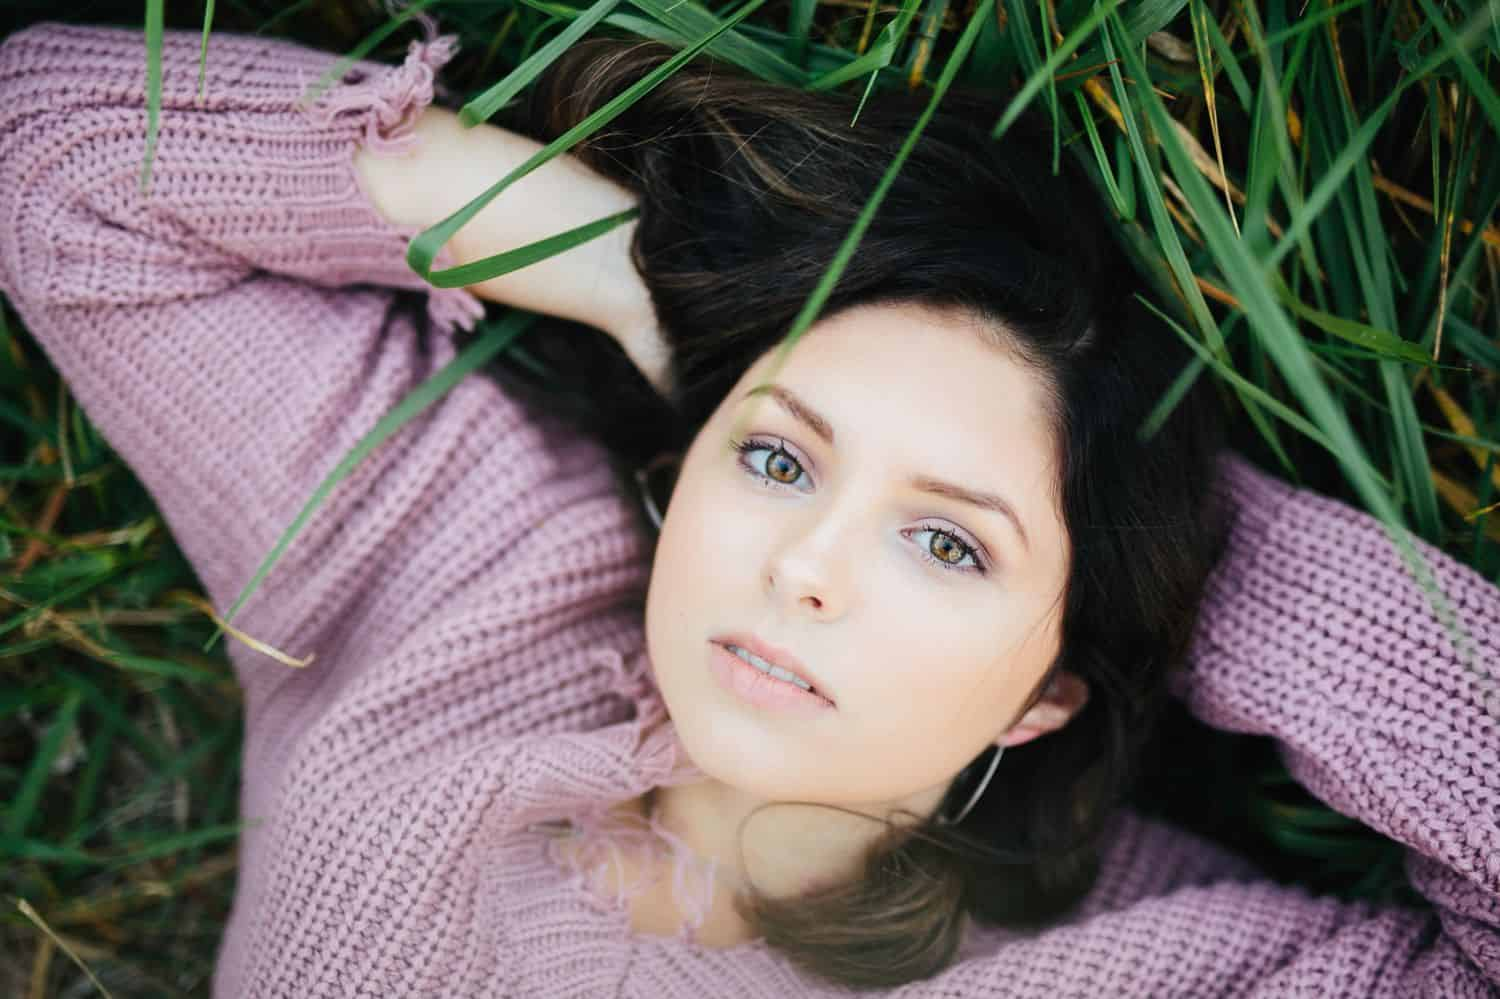 A high school senior in a lavender sweater lies in the green grass with a serious expression on her face